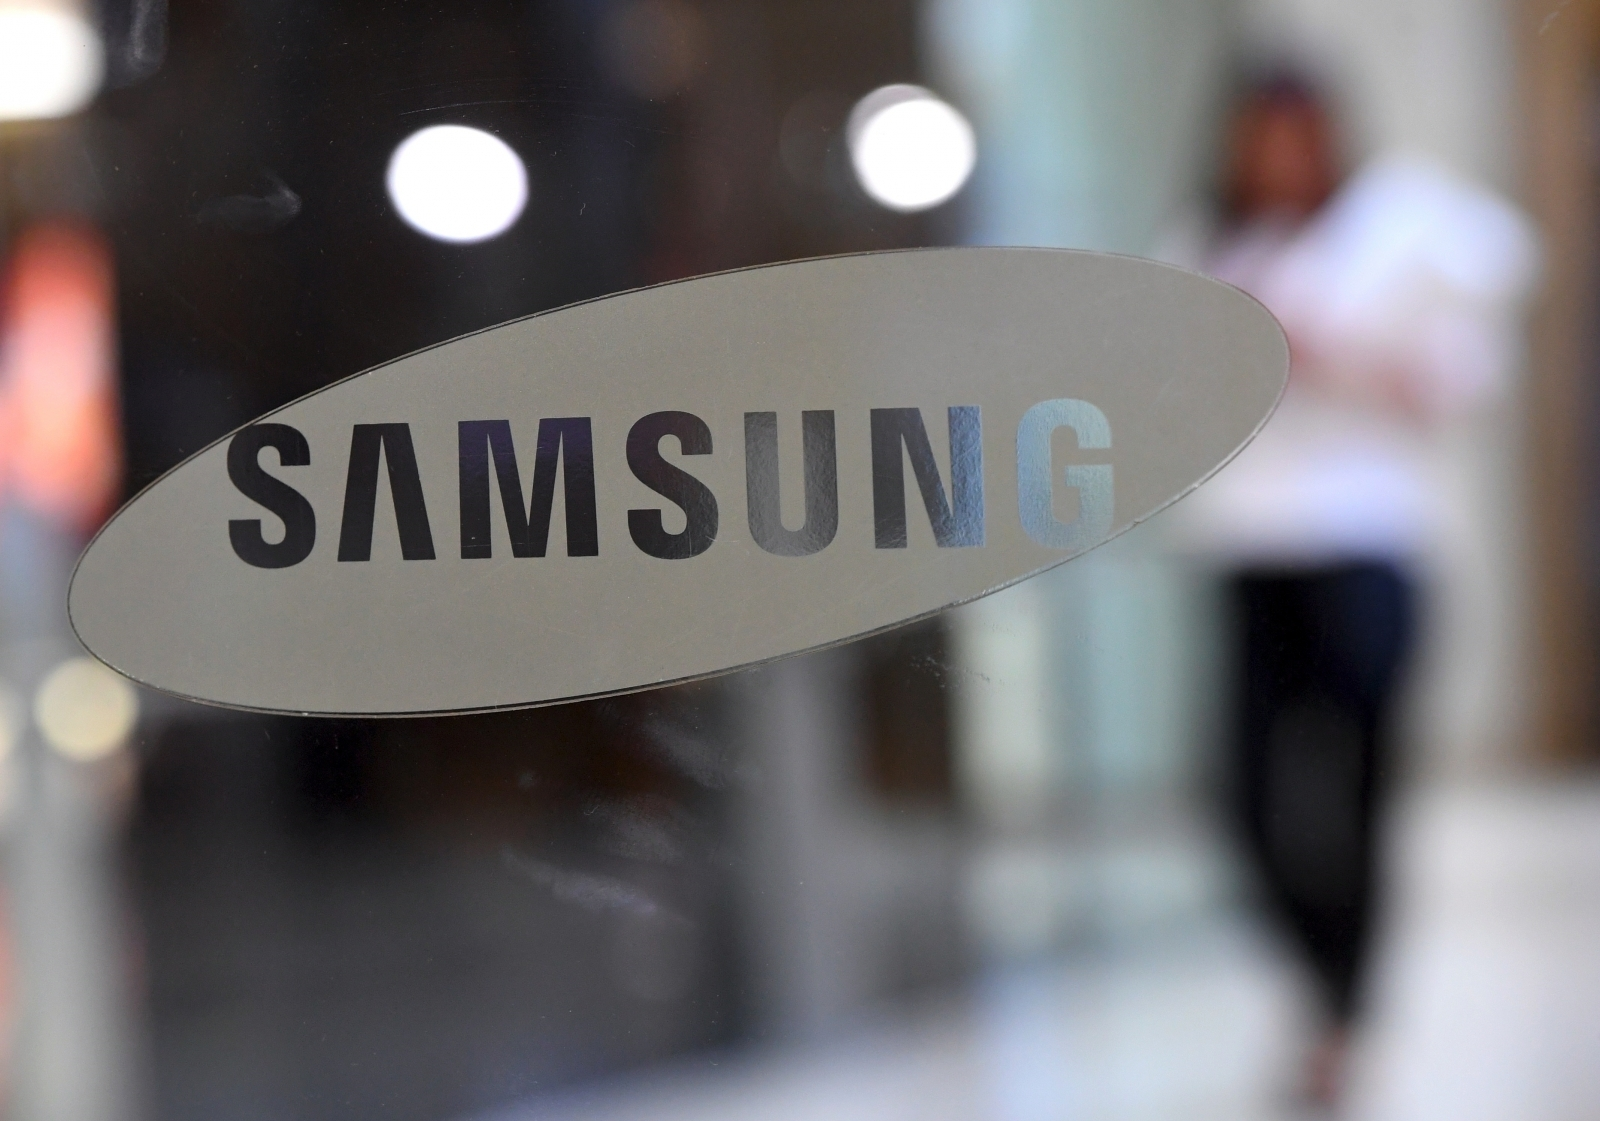 Samsung's profit exceeds expectation thanks to memory chips